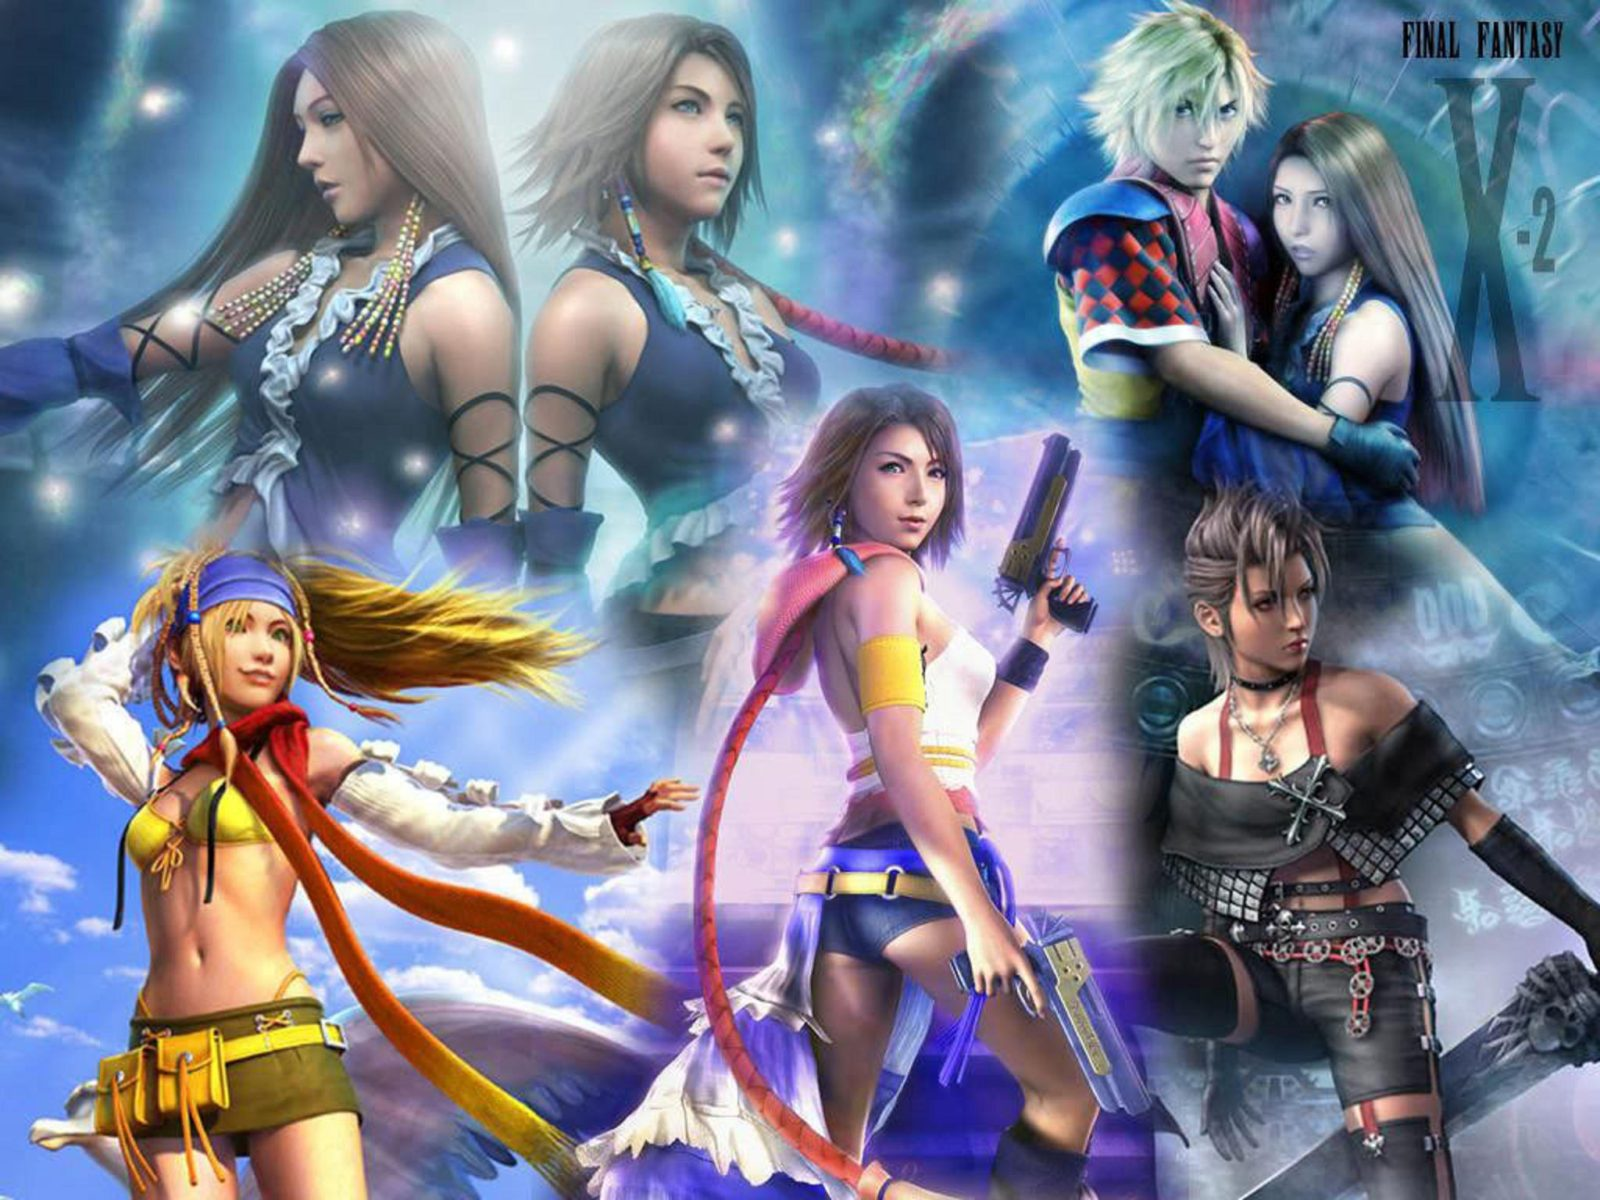 Animated Dragon Wallpaper Free Final Fantasy X 2 Series Yuna Games Video Hd Wallpaper